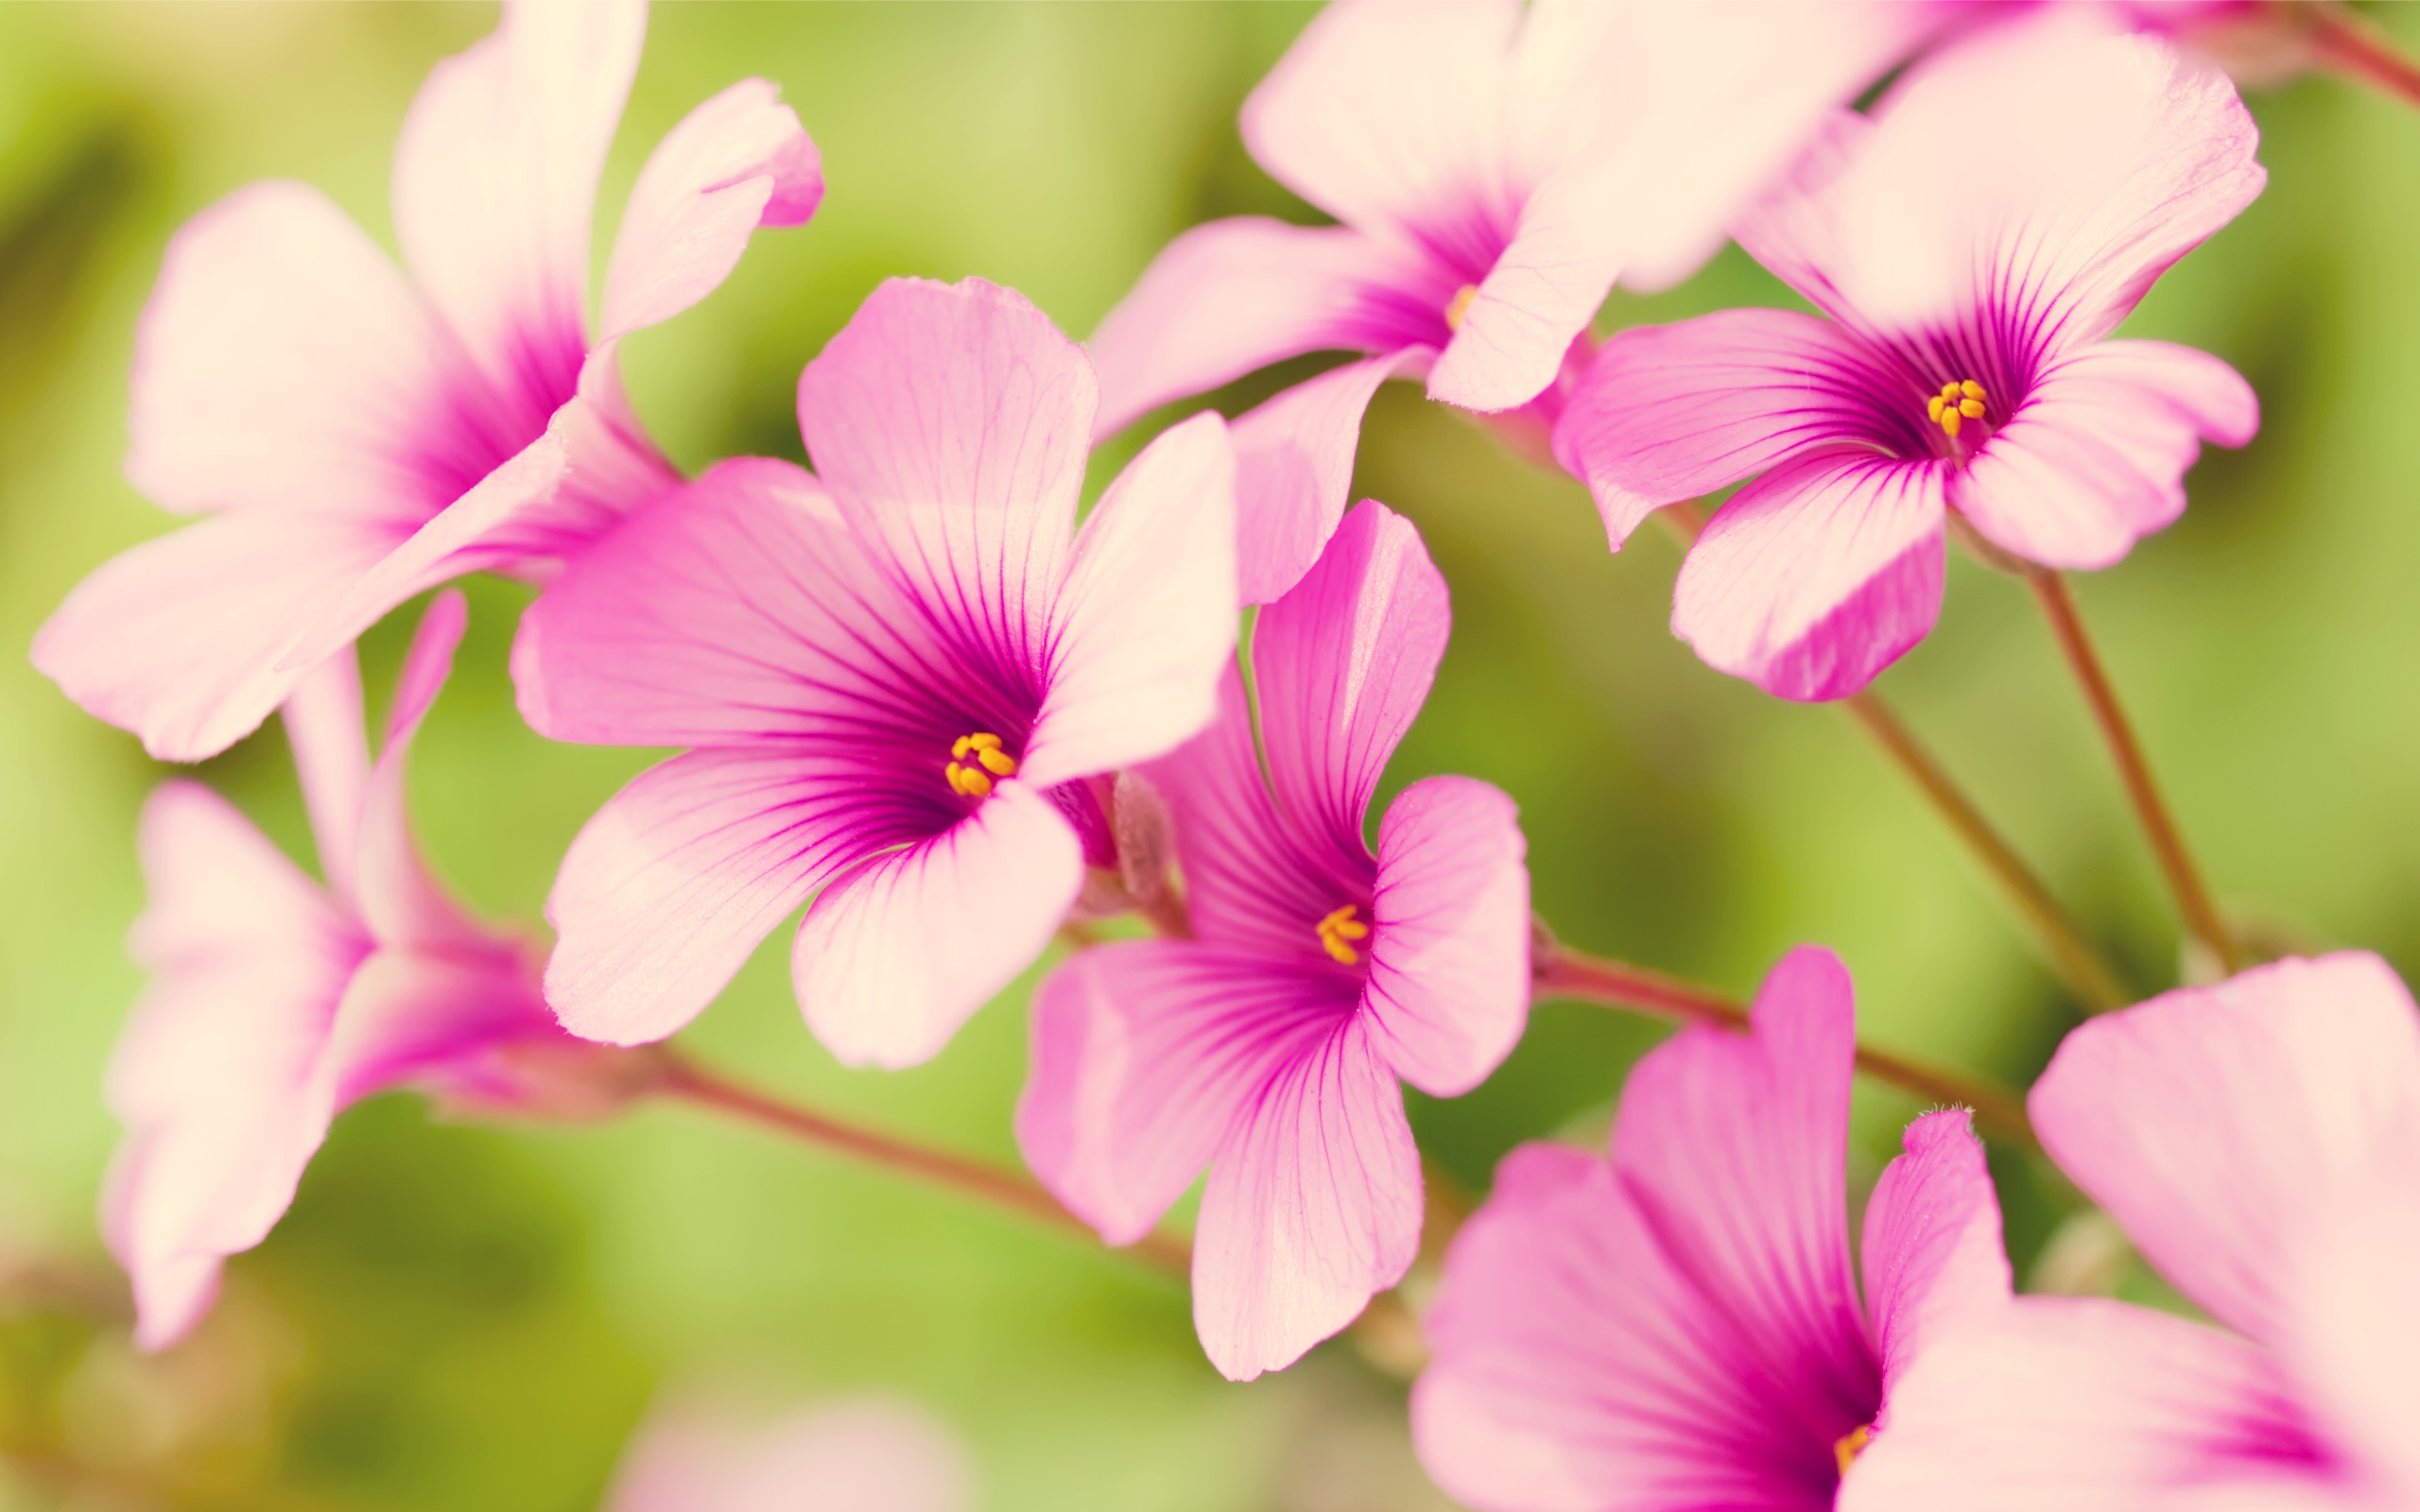 ... Pretty Flowers · Pretty Flowers HD